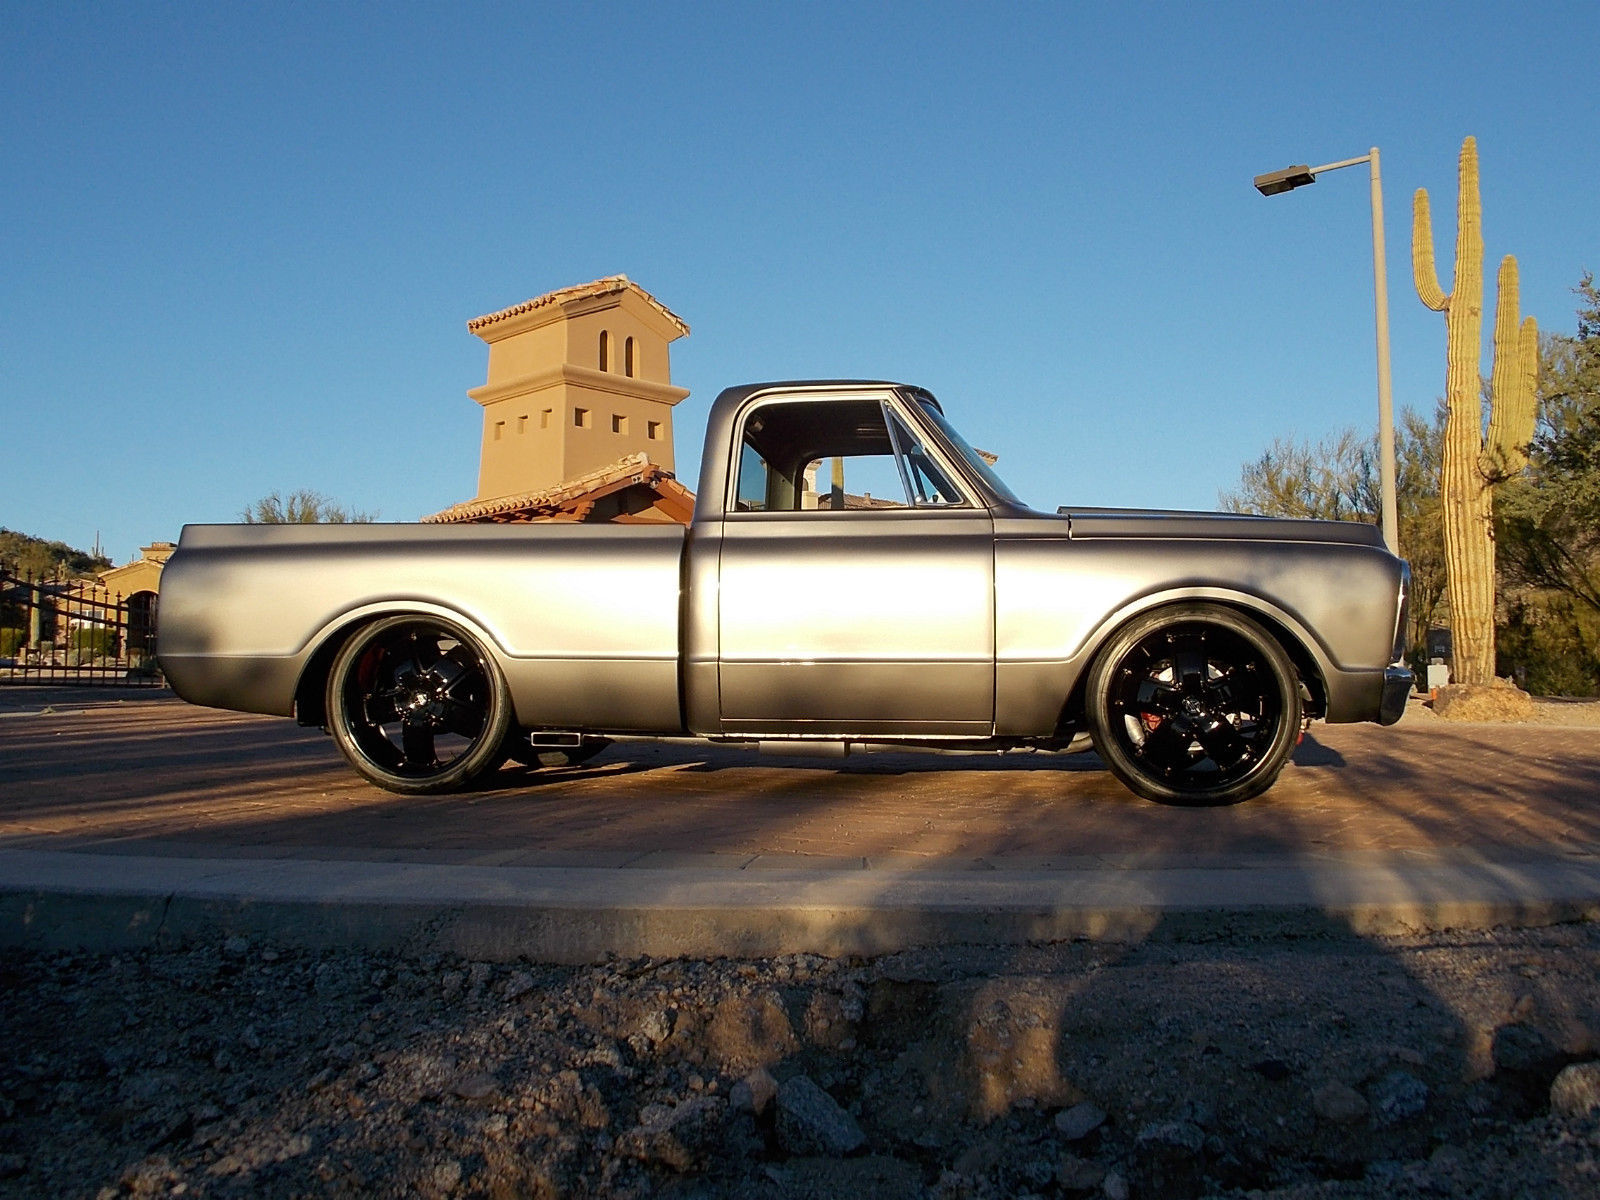 1969 Chevy Truck For Sale >> 1969 Chevrolet C10 454 Pro Touring Full Frame Off ...